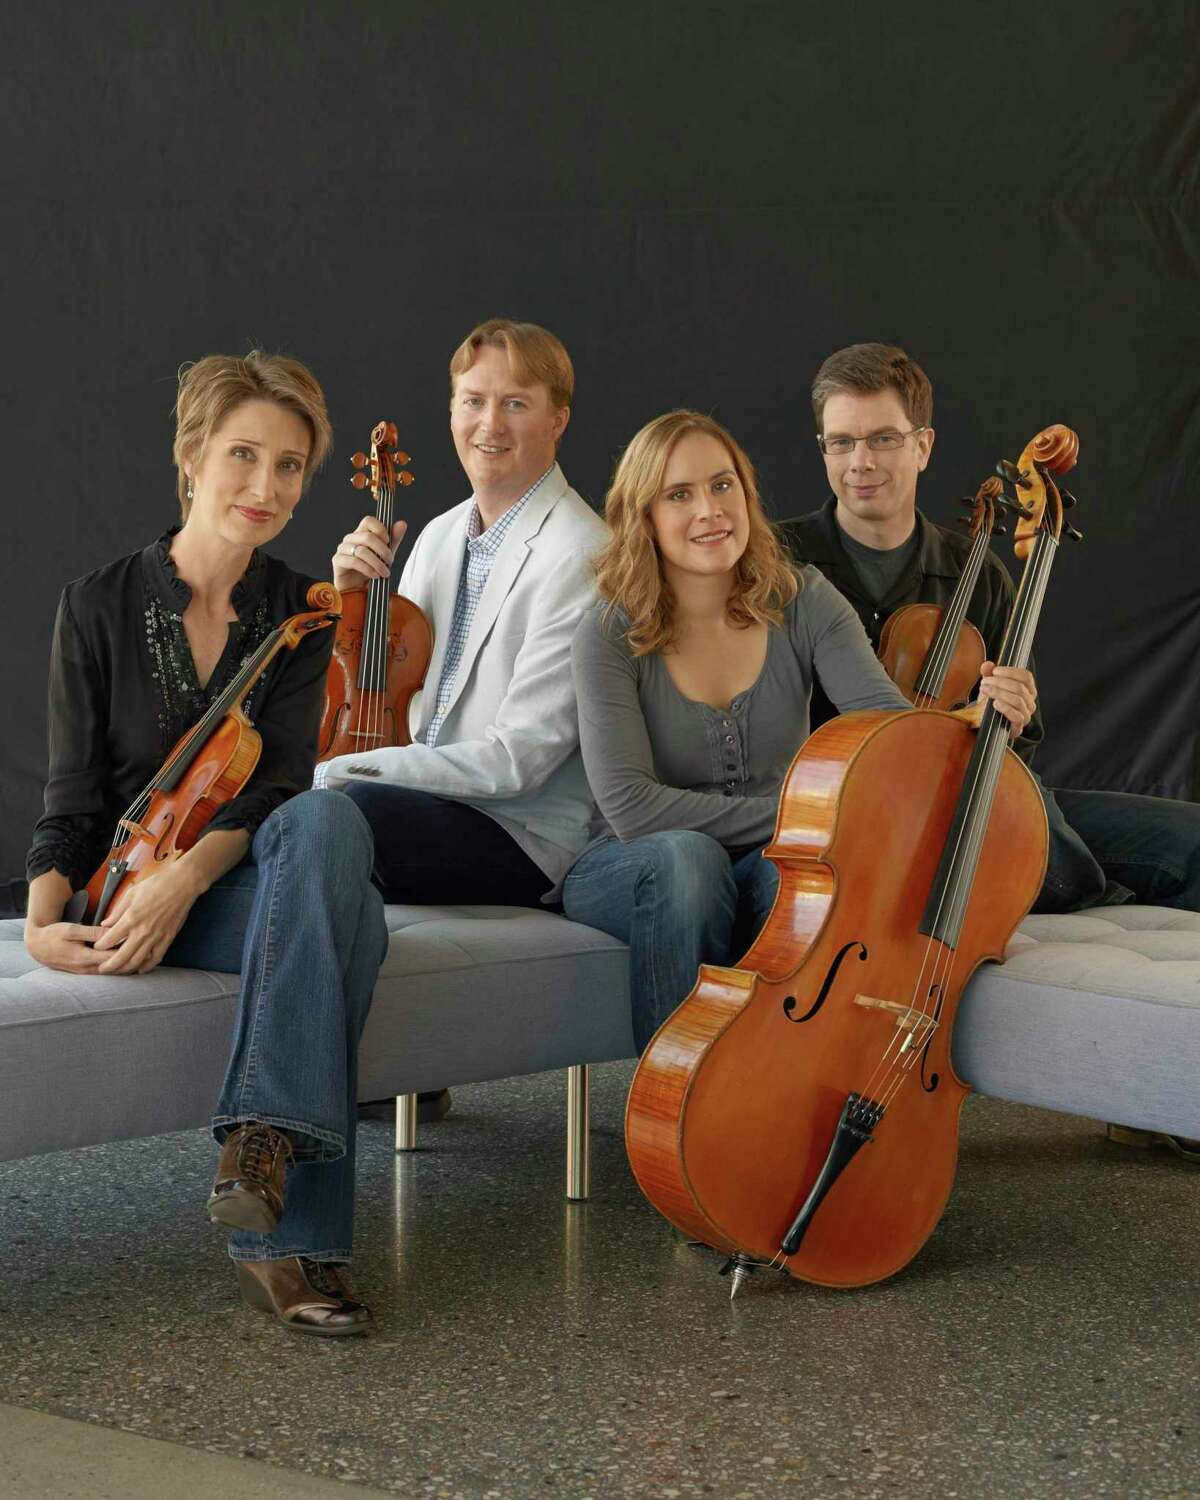 The West Shore Community College Performing Arts Living Room Series will feature a musical evening with the Fry Street String Quartet on Thursday, March 4 at 7:30 p.m. (Courtesy photo)